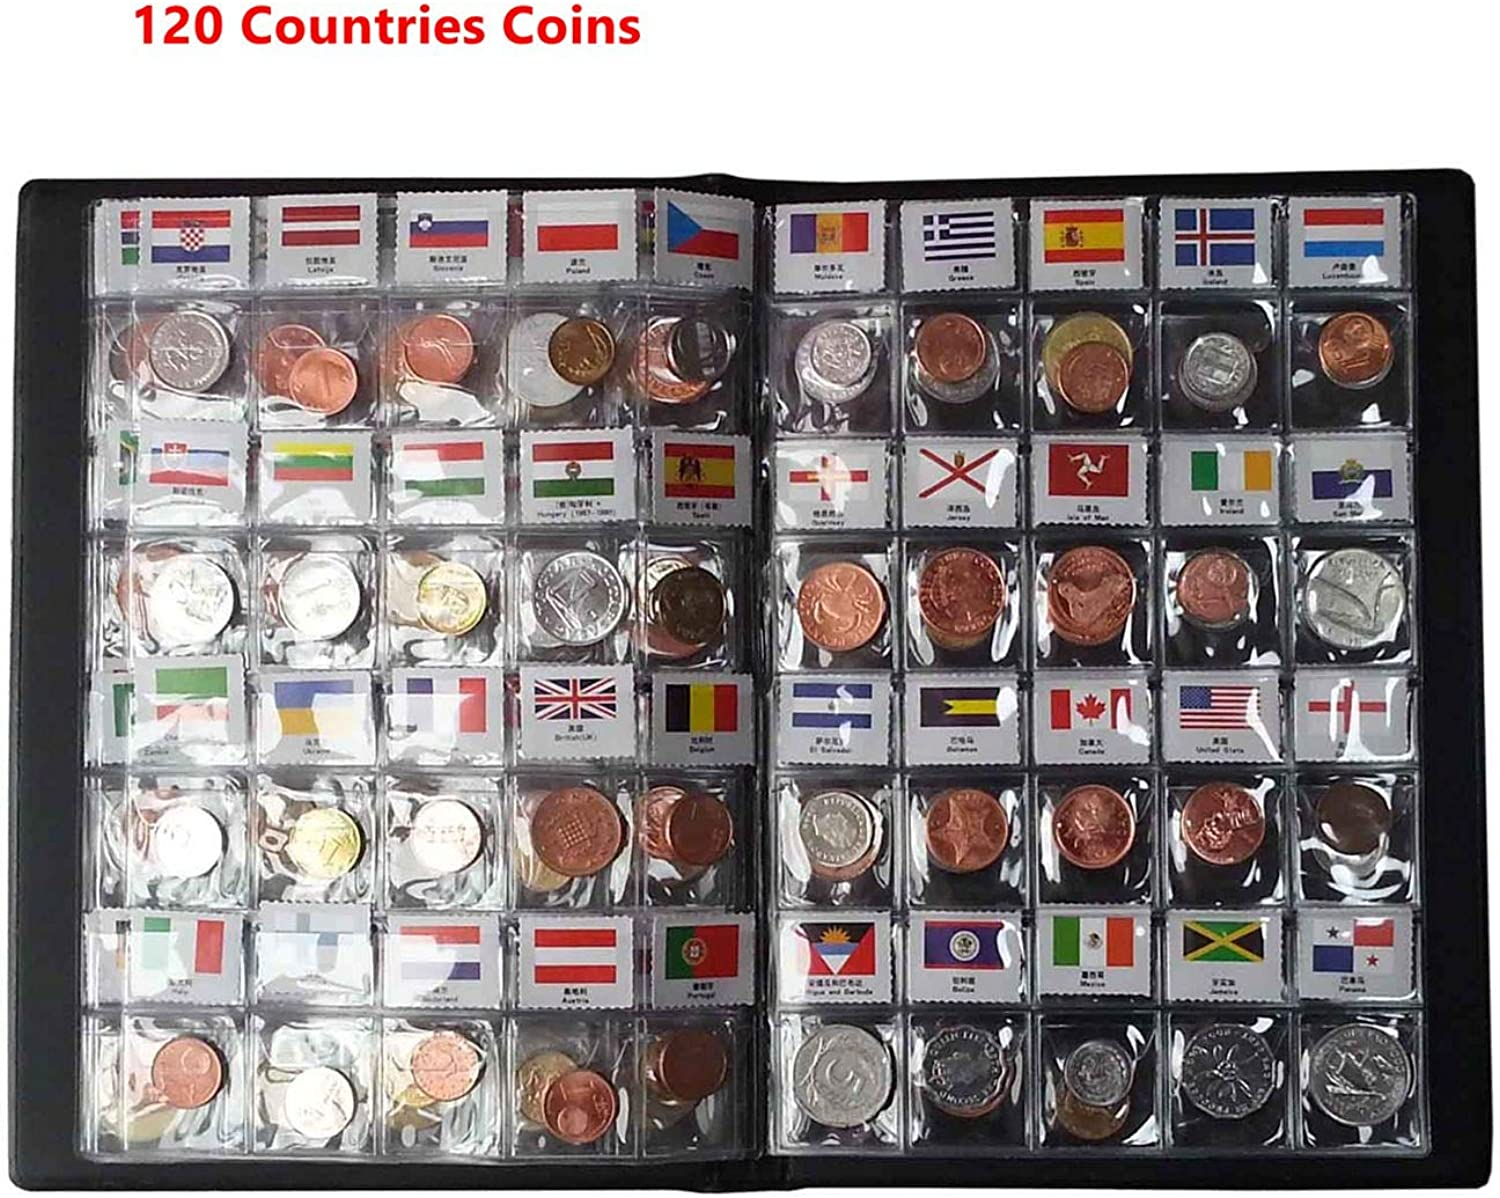 Coin Collection Starter Kit 120 Countries Coins  100% Original Genuine World Coin with Leather Collecting Album Taged by Country Name and Flags Coin Holder Collection Storage Classic Gifts